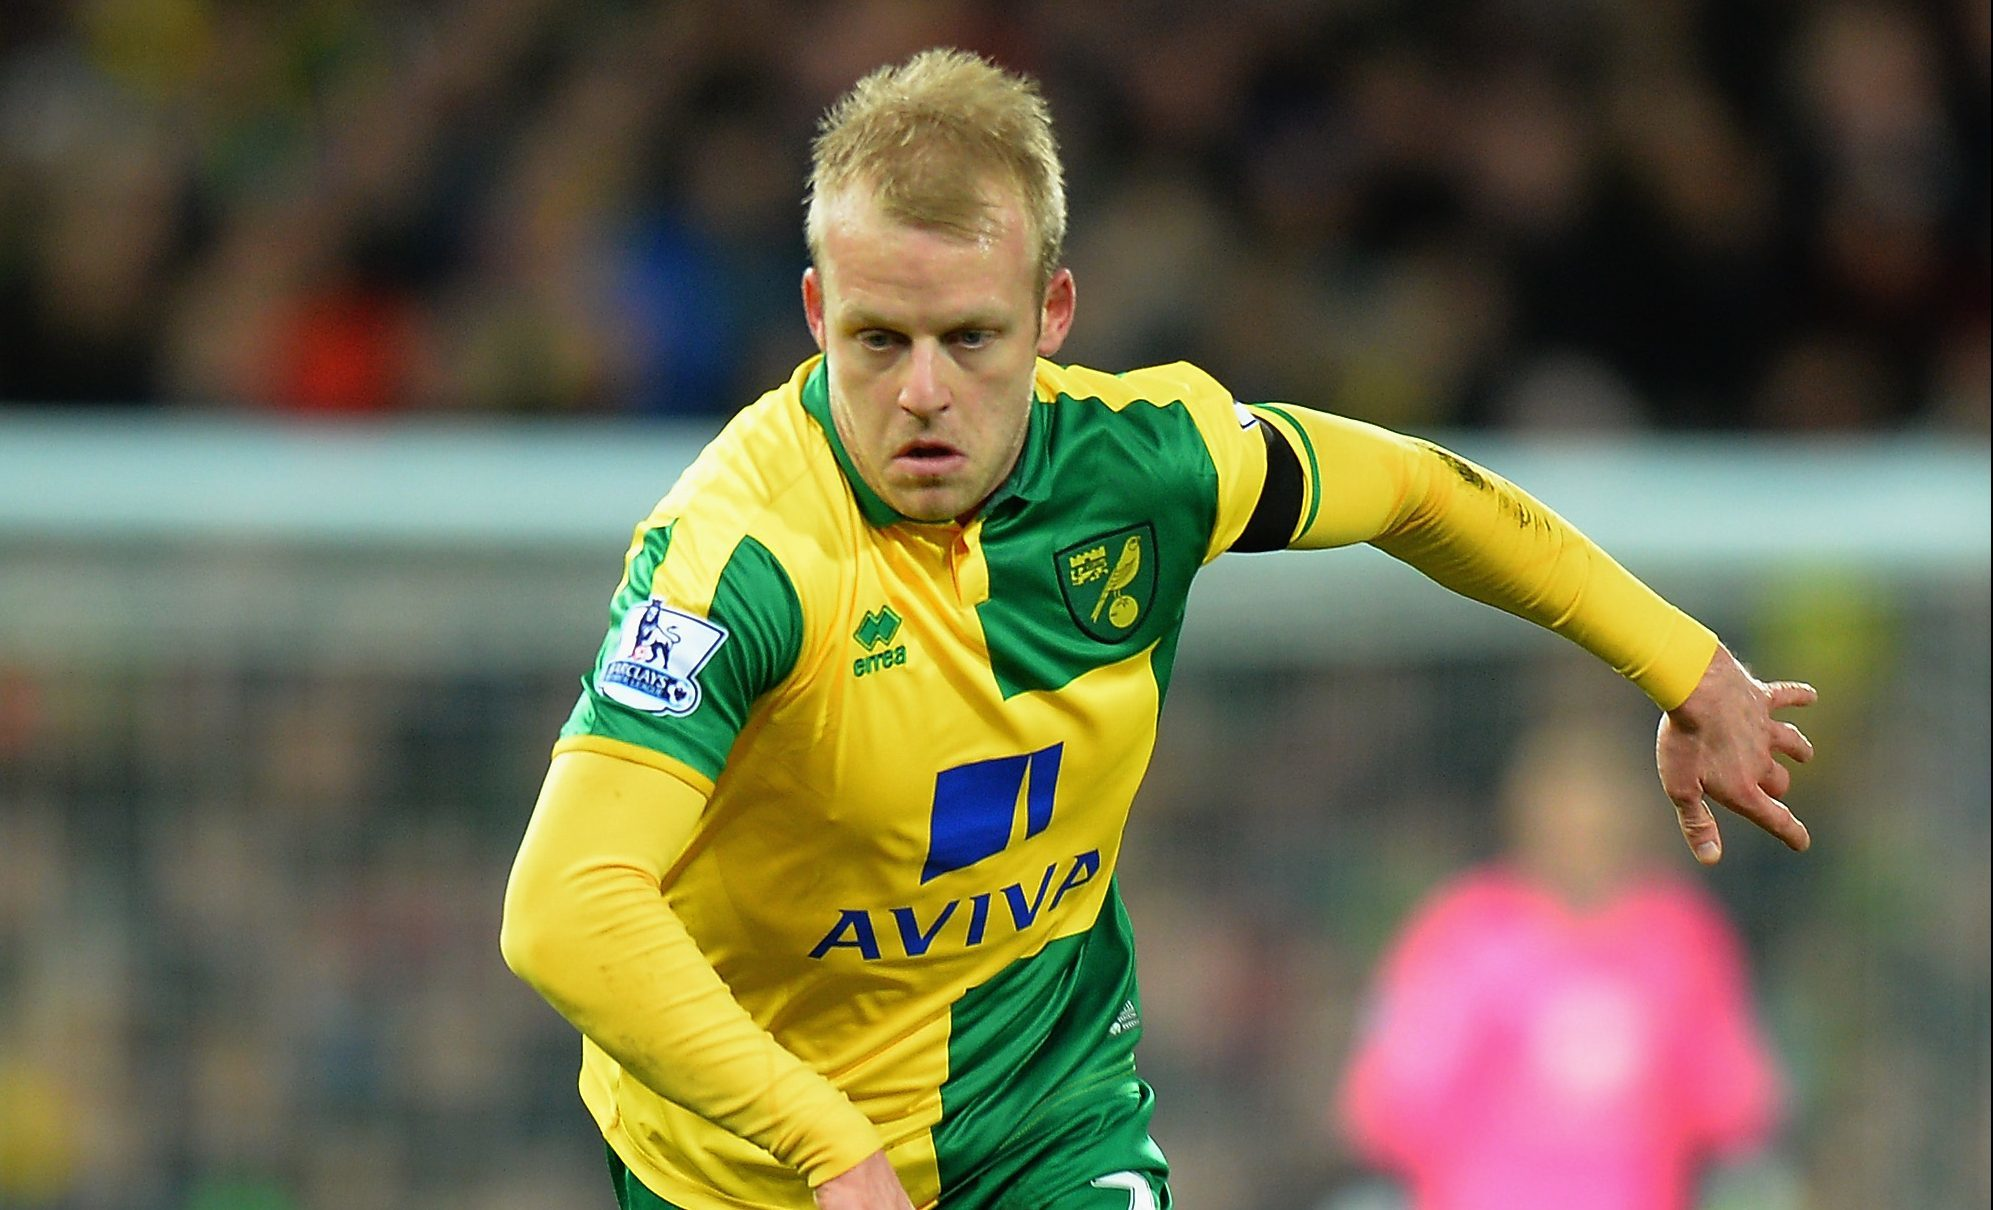 Steven Naismith in action for Norwich City (Tony Marshall/Getty Images)